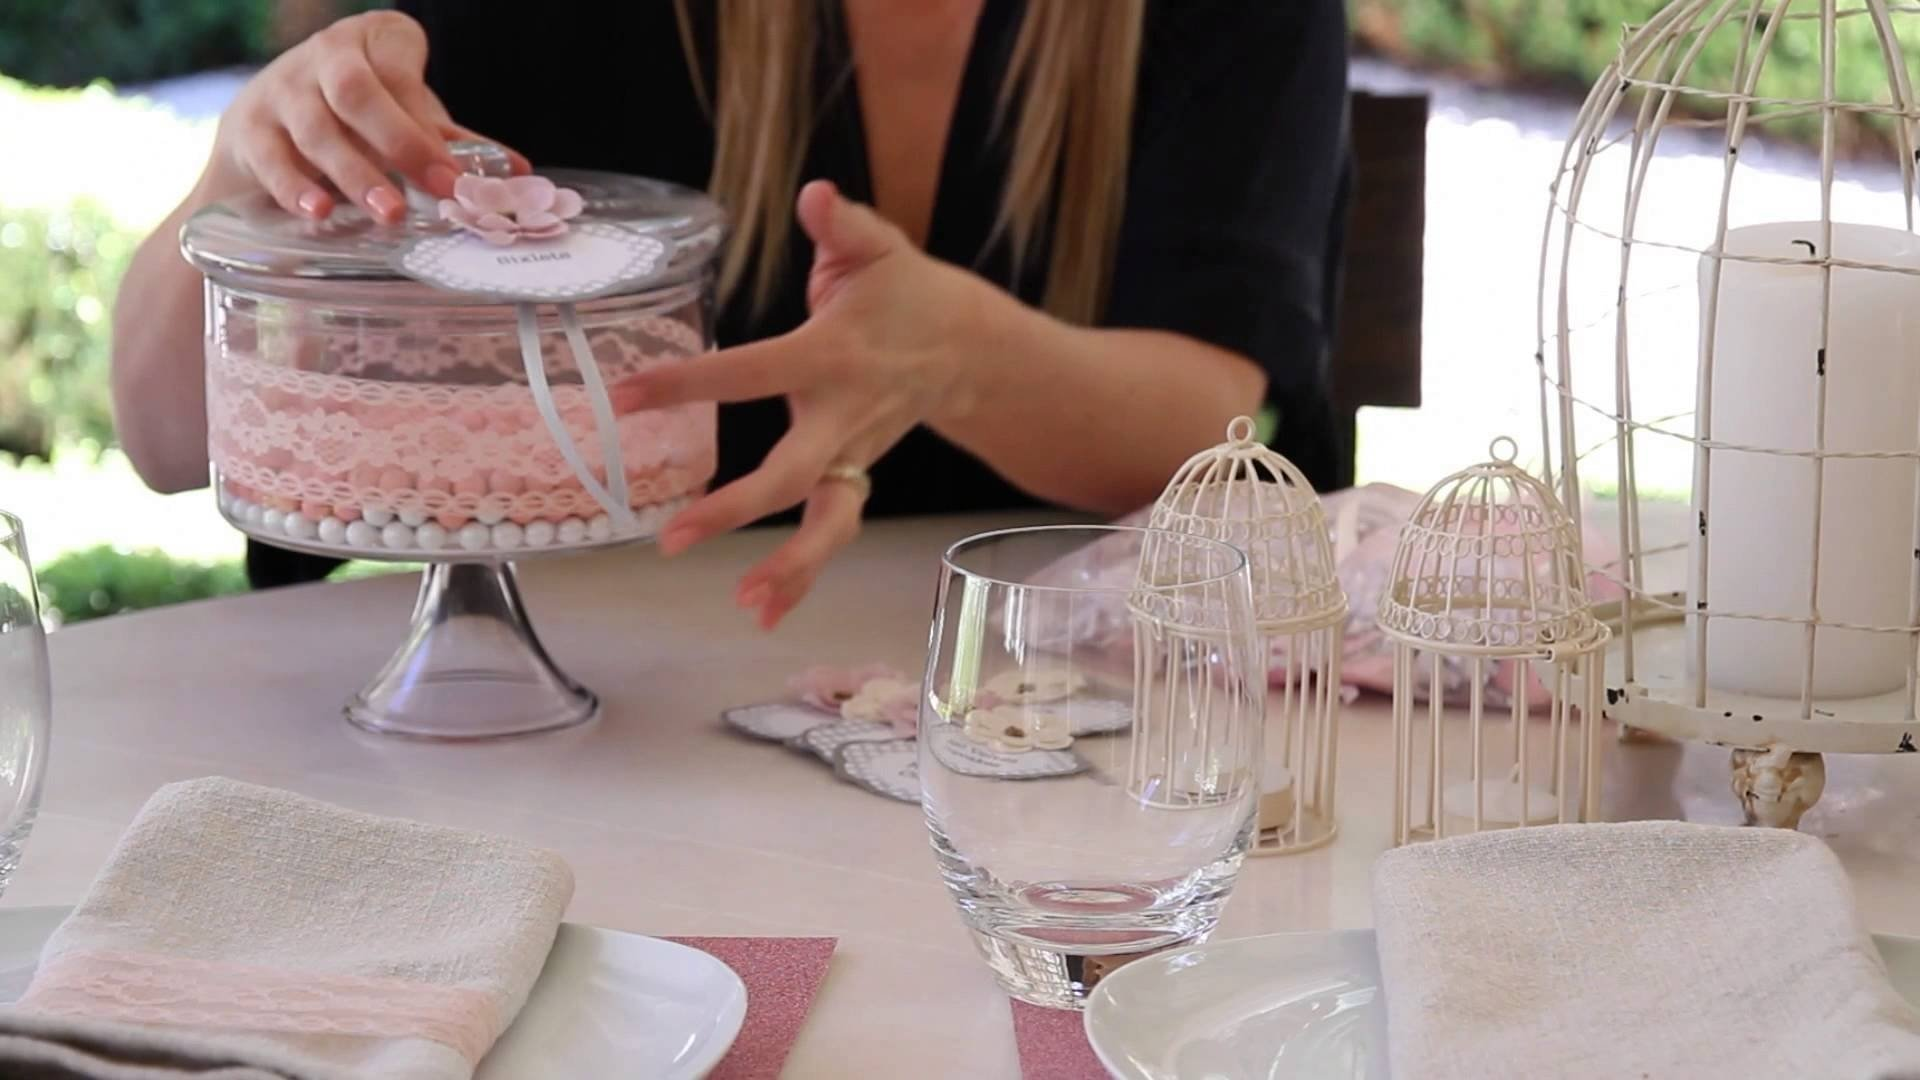 10 Unique Baby Shower Girl Decoration Ideas how to decorate a pink elegant baby shower crafting ideas youtube 2021